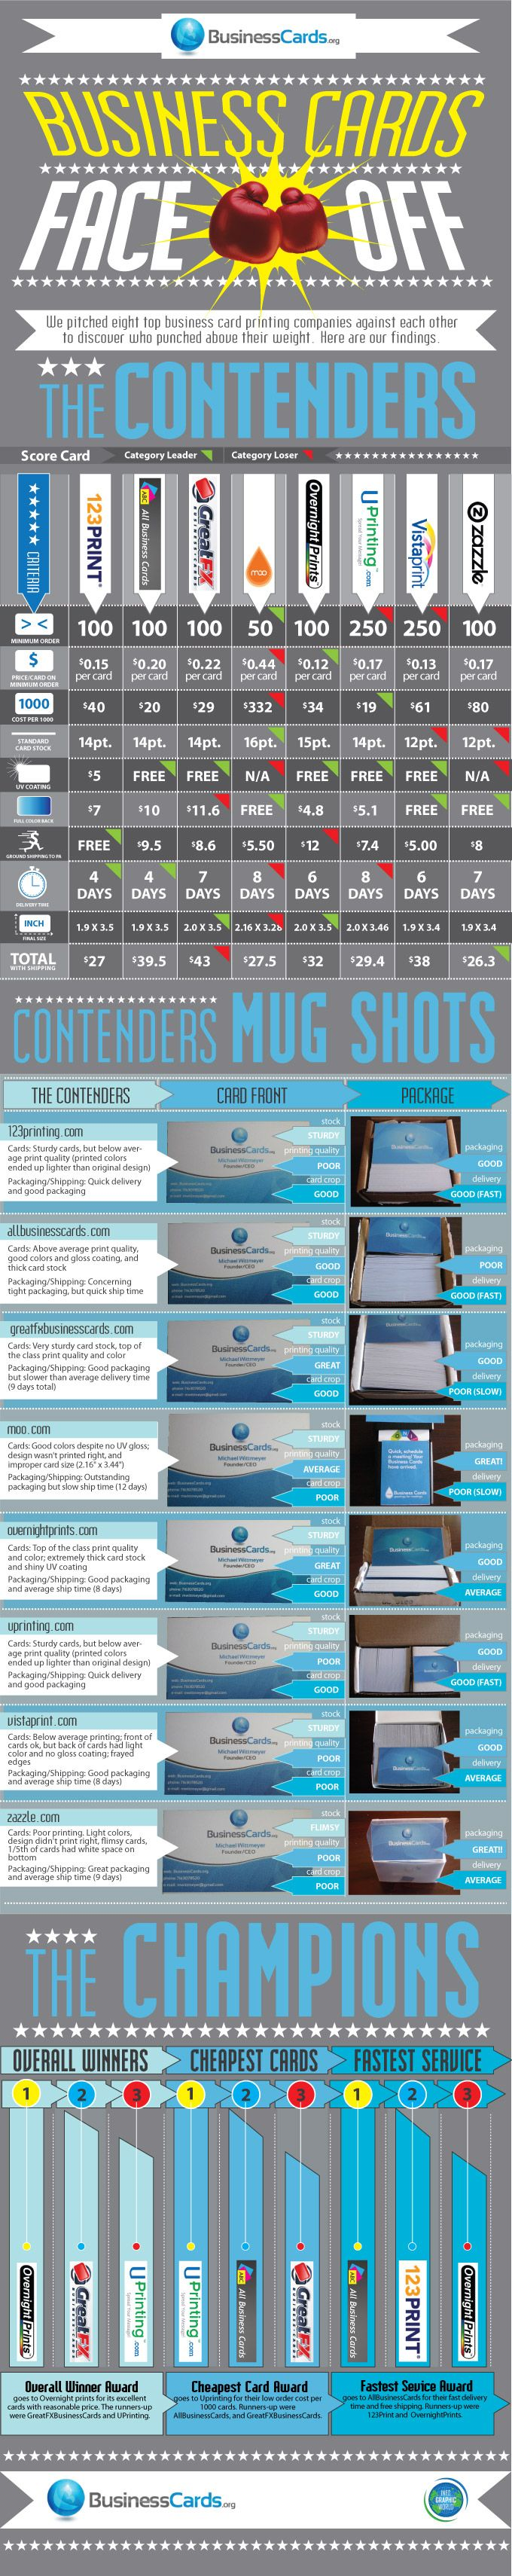 Business card companies review infographics